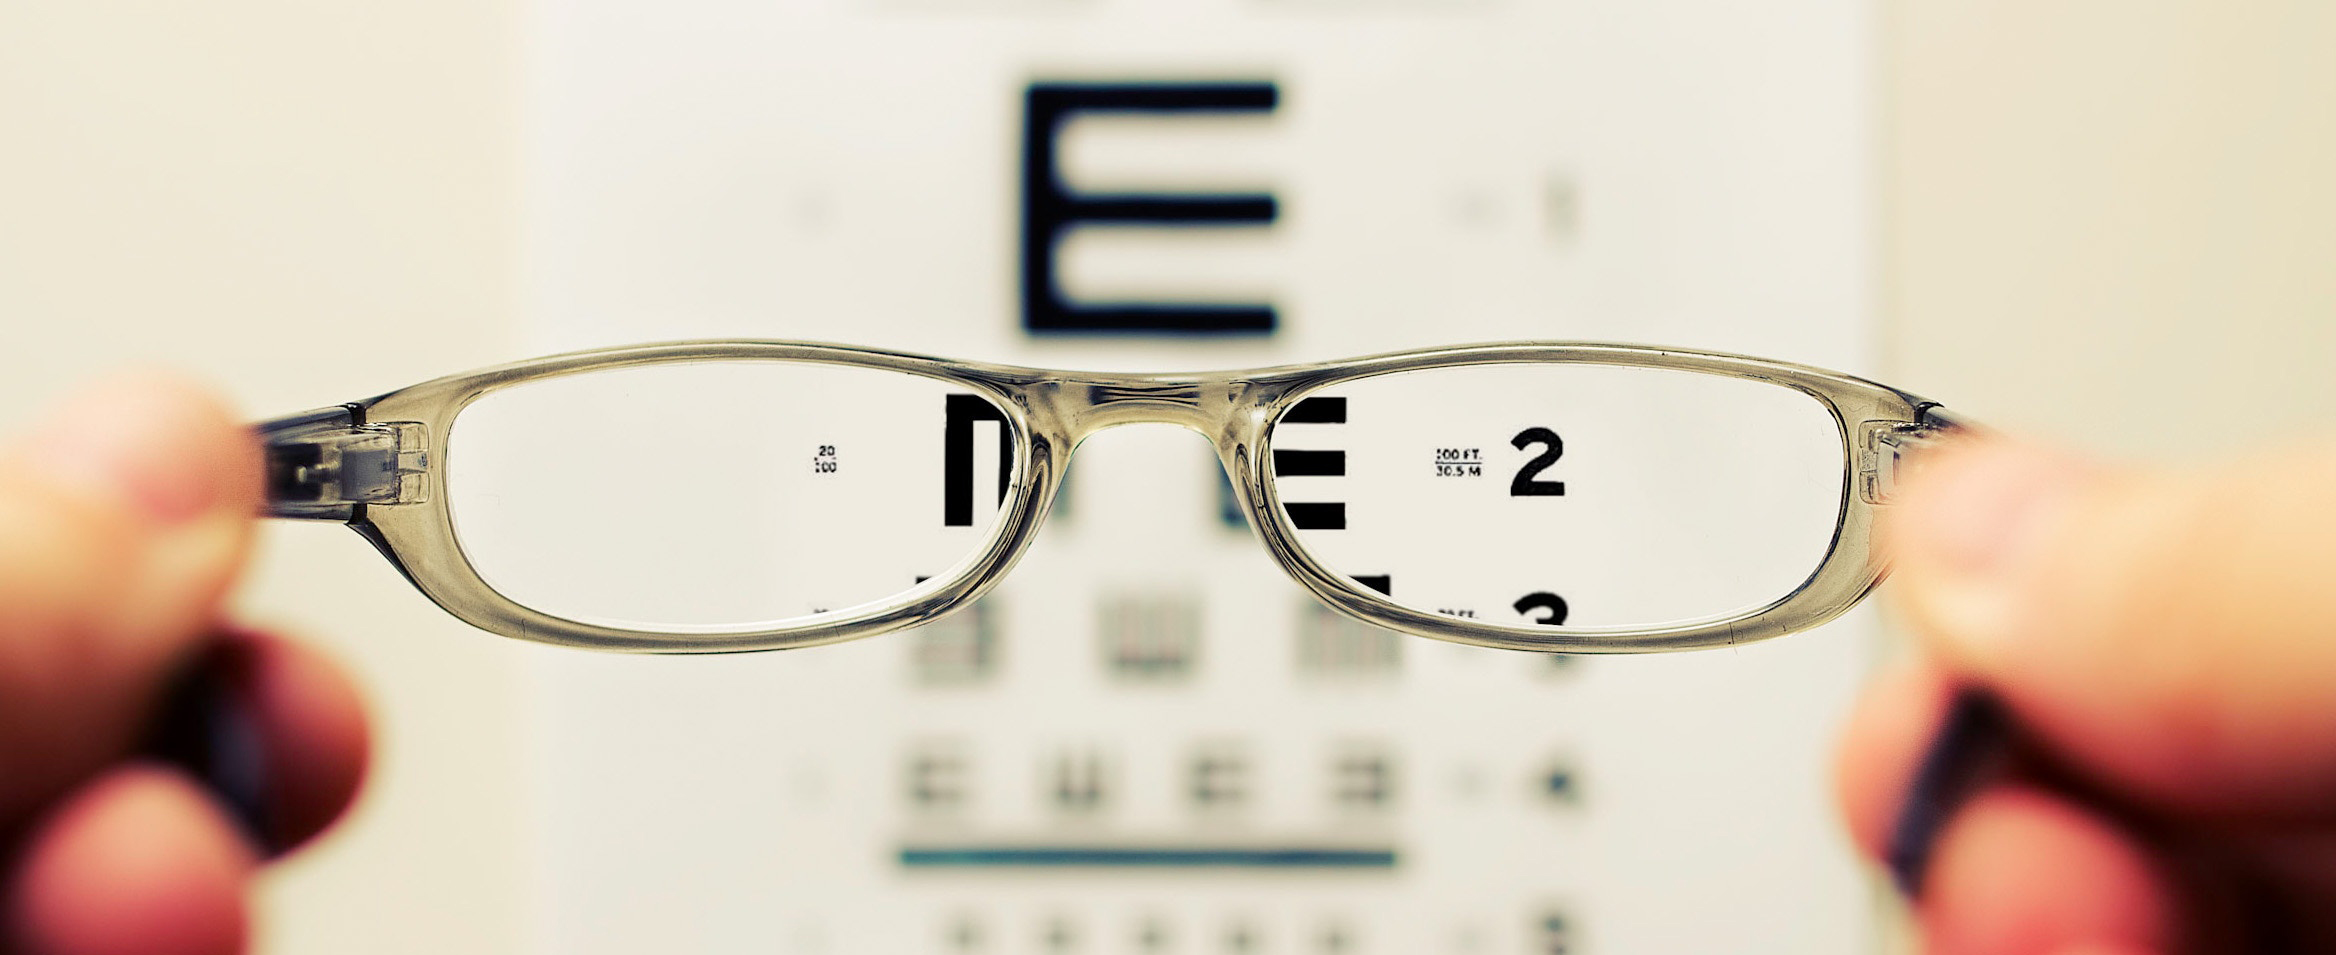 Vision test - hands holding eye glasses.